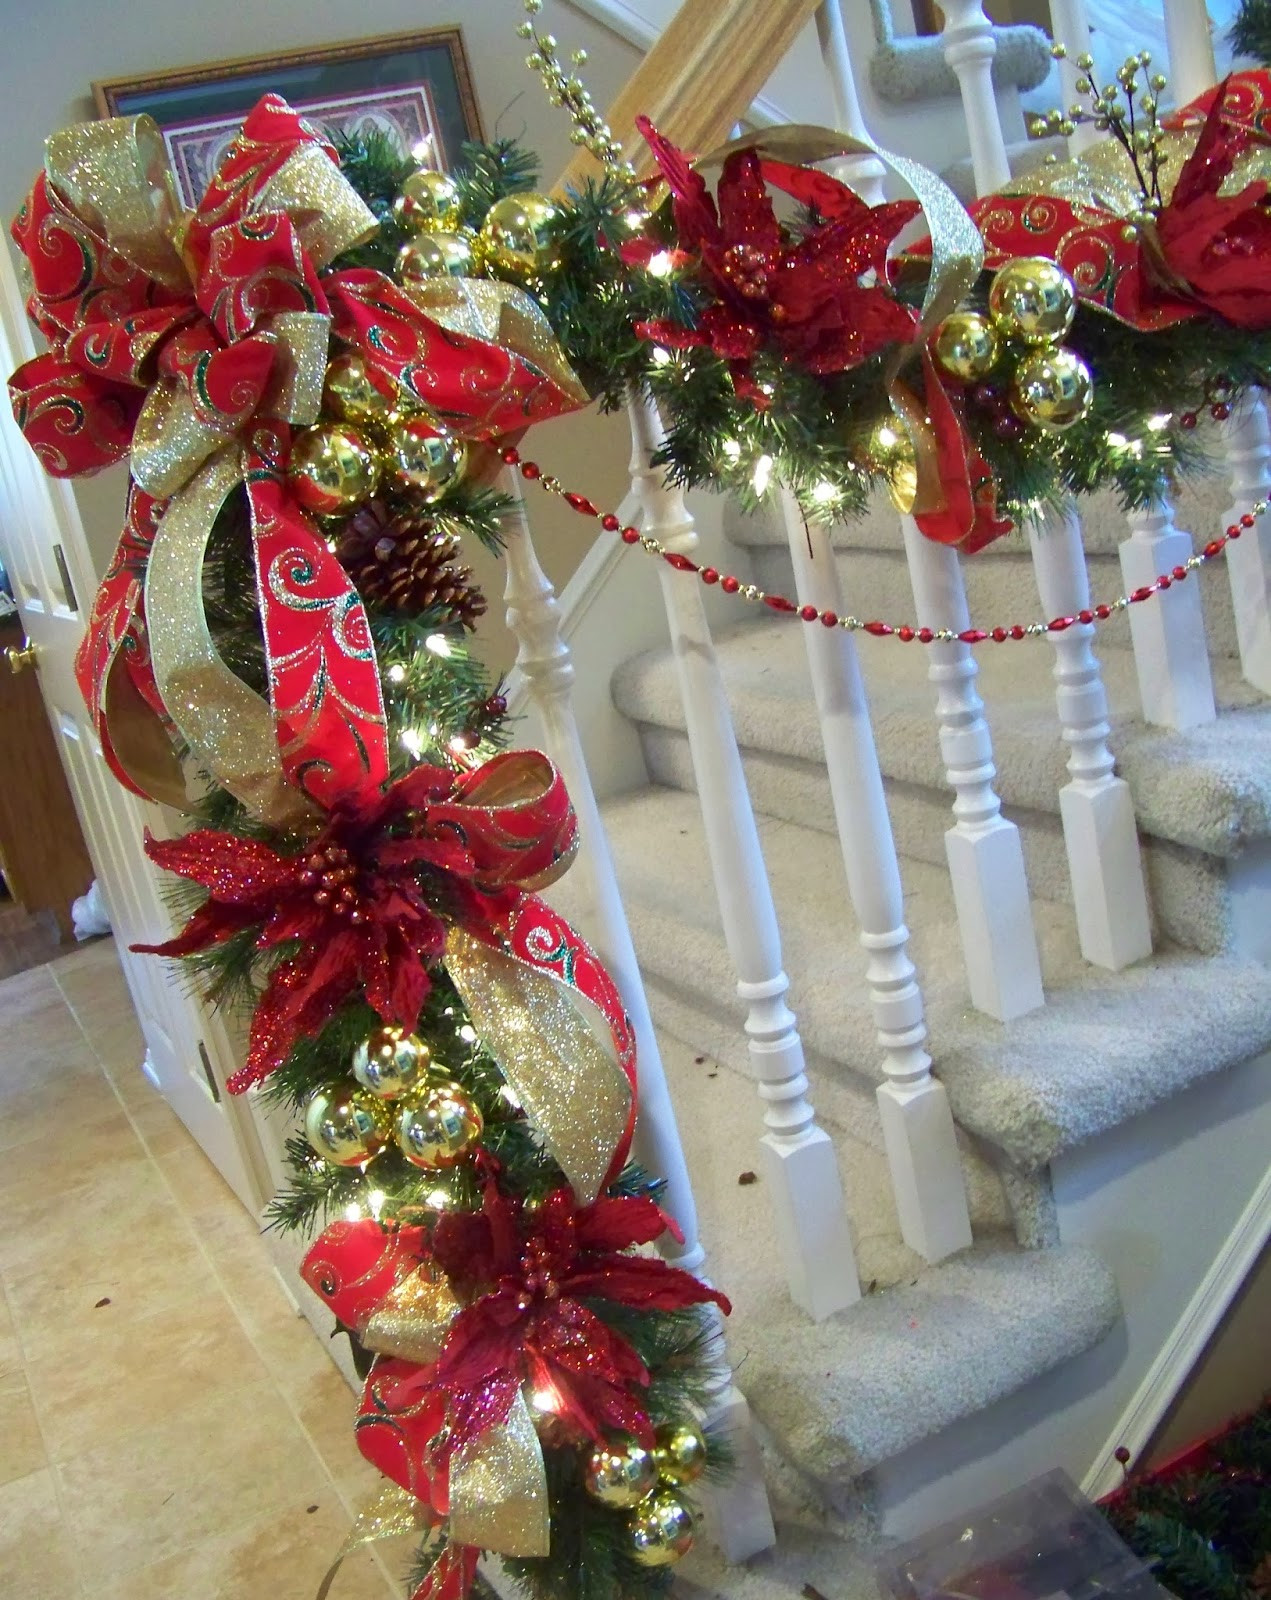 Best ideas about DIY Garland Christmas . Save or Pin 50 Best DIY Christmas Garland Decorating Ideas for 2017 Now.